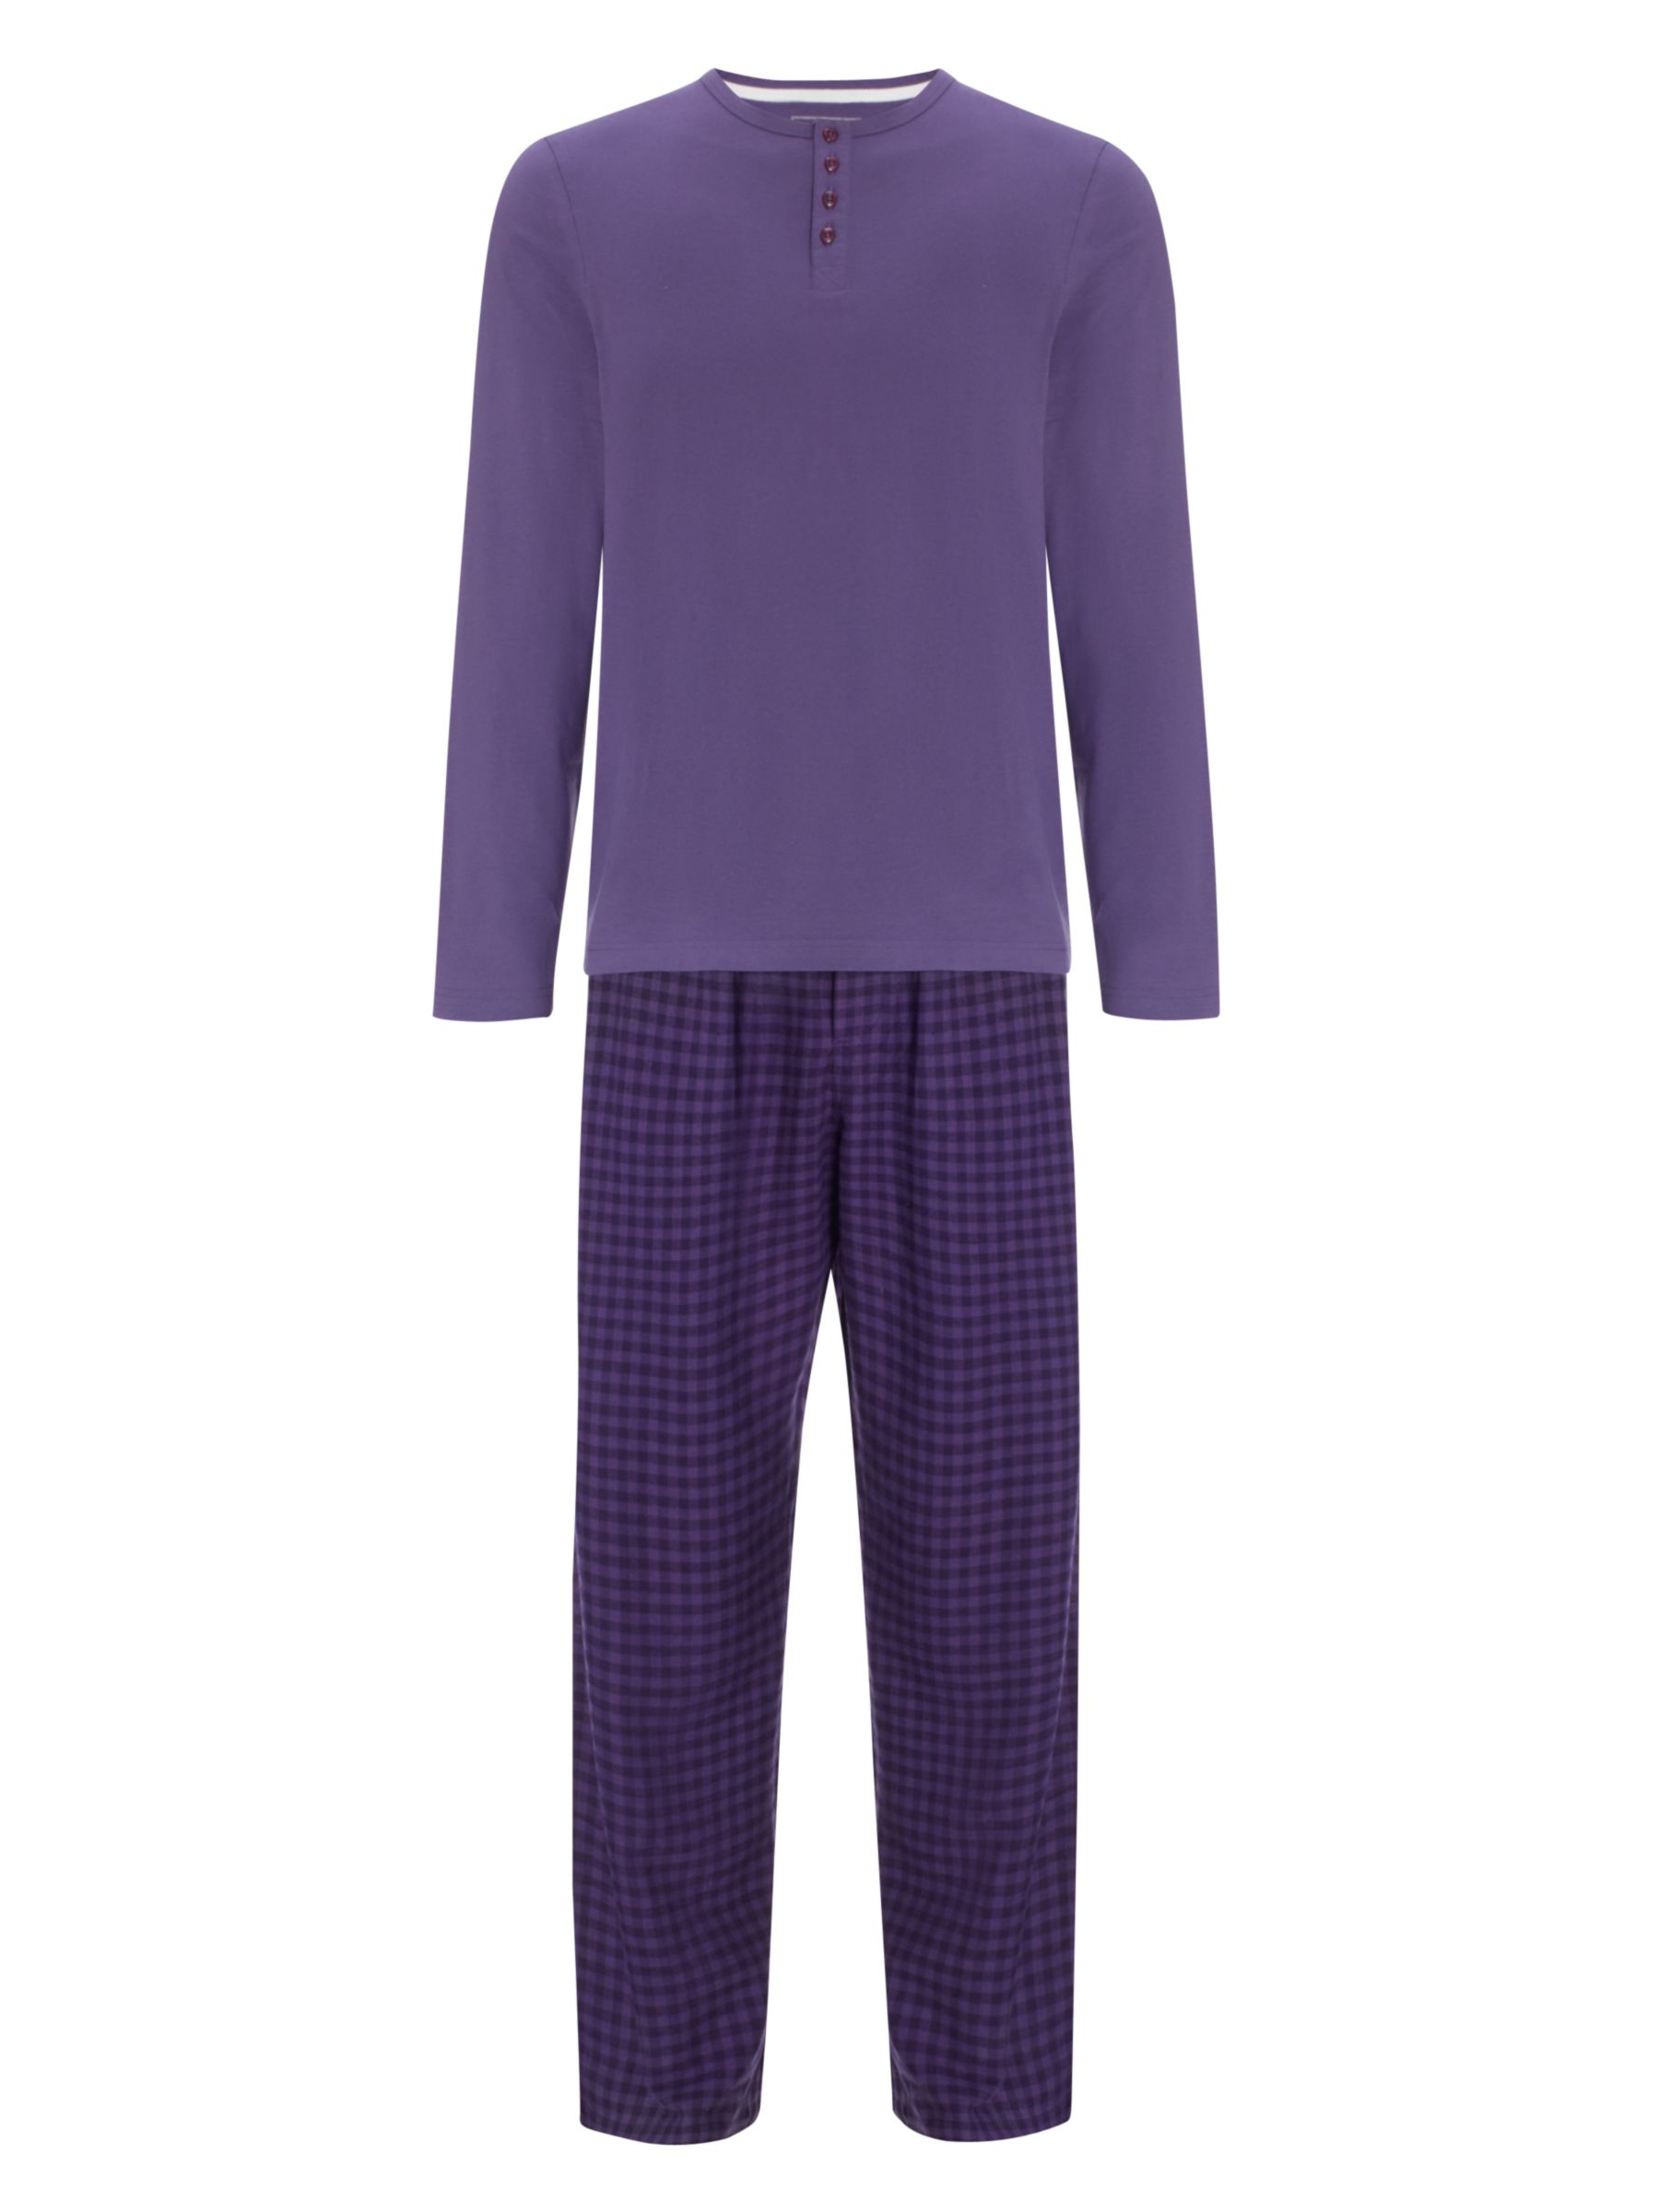 John Lewis Long Sleeve T-Shirt and Gingham Pyjama Pants, Purple